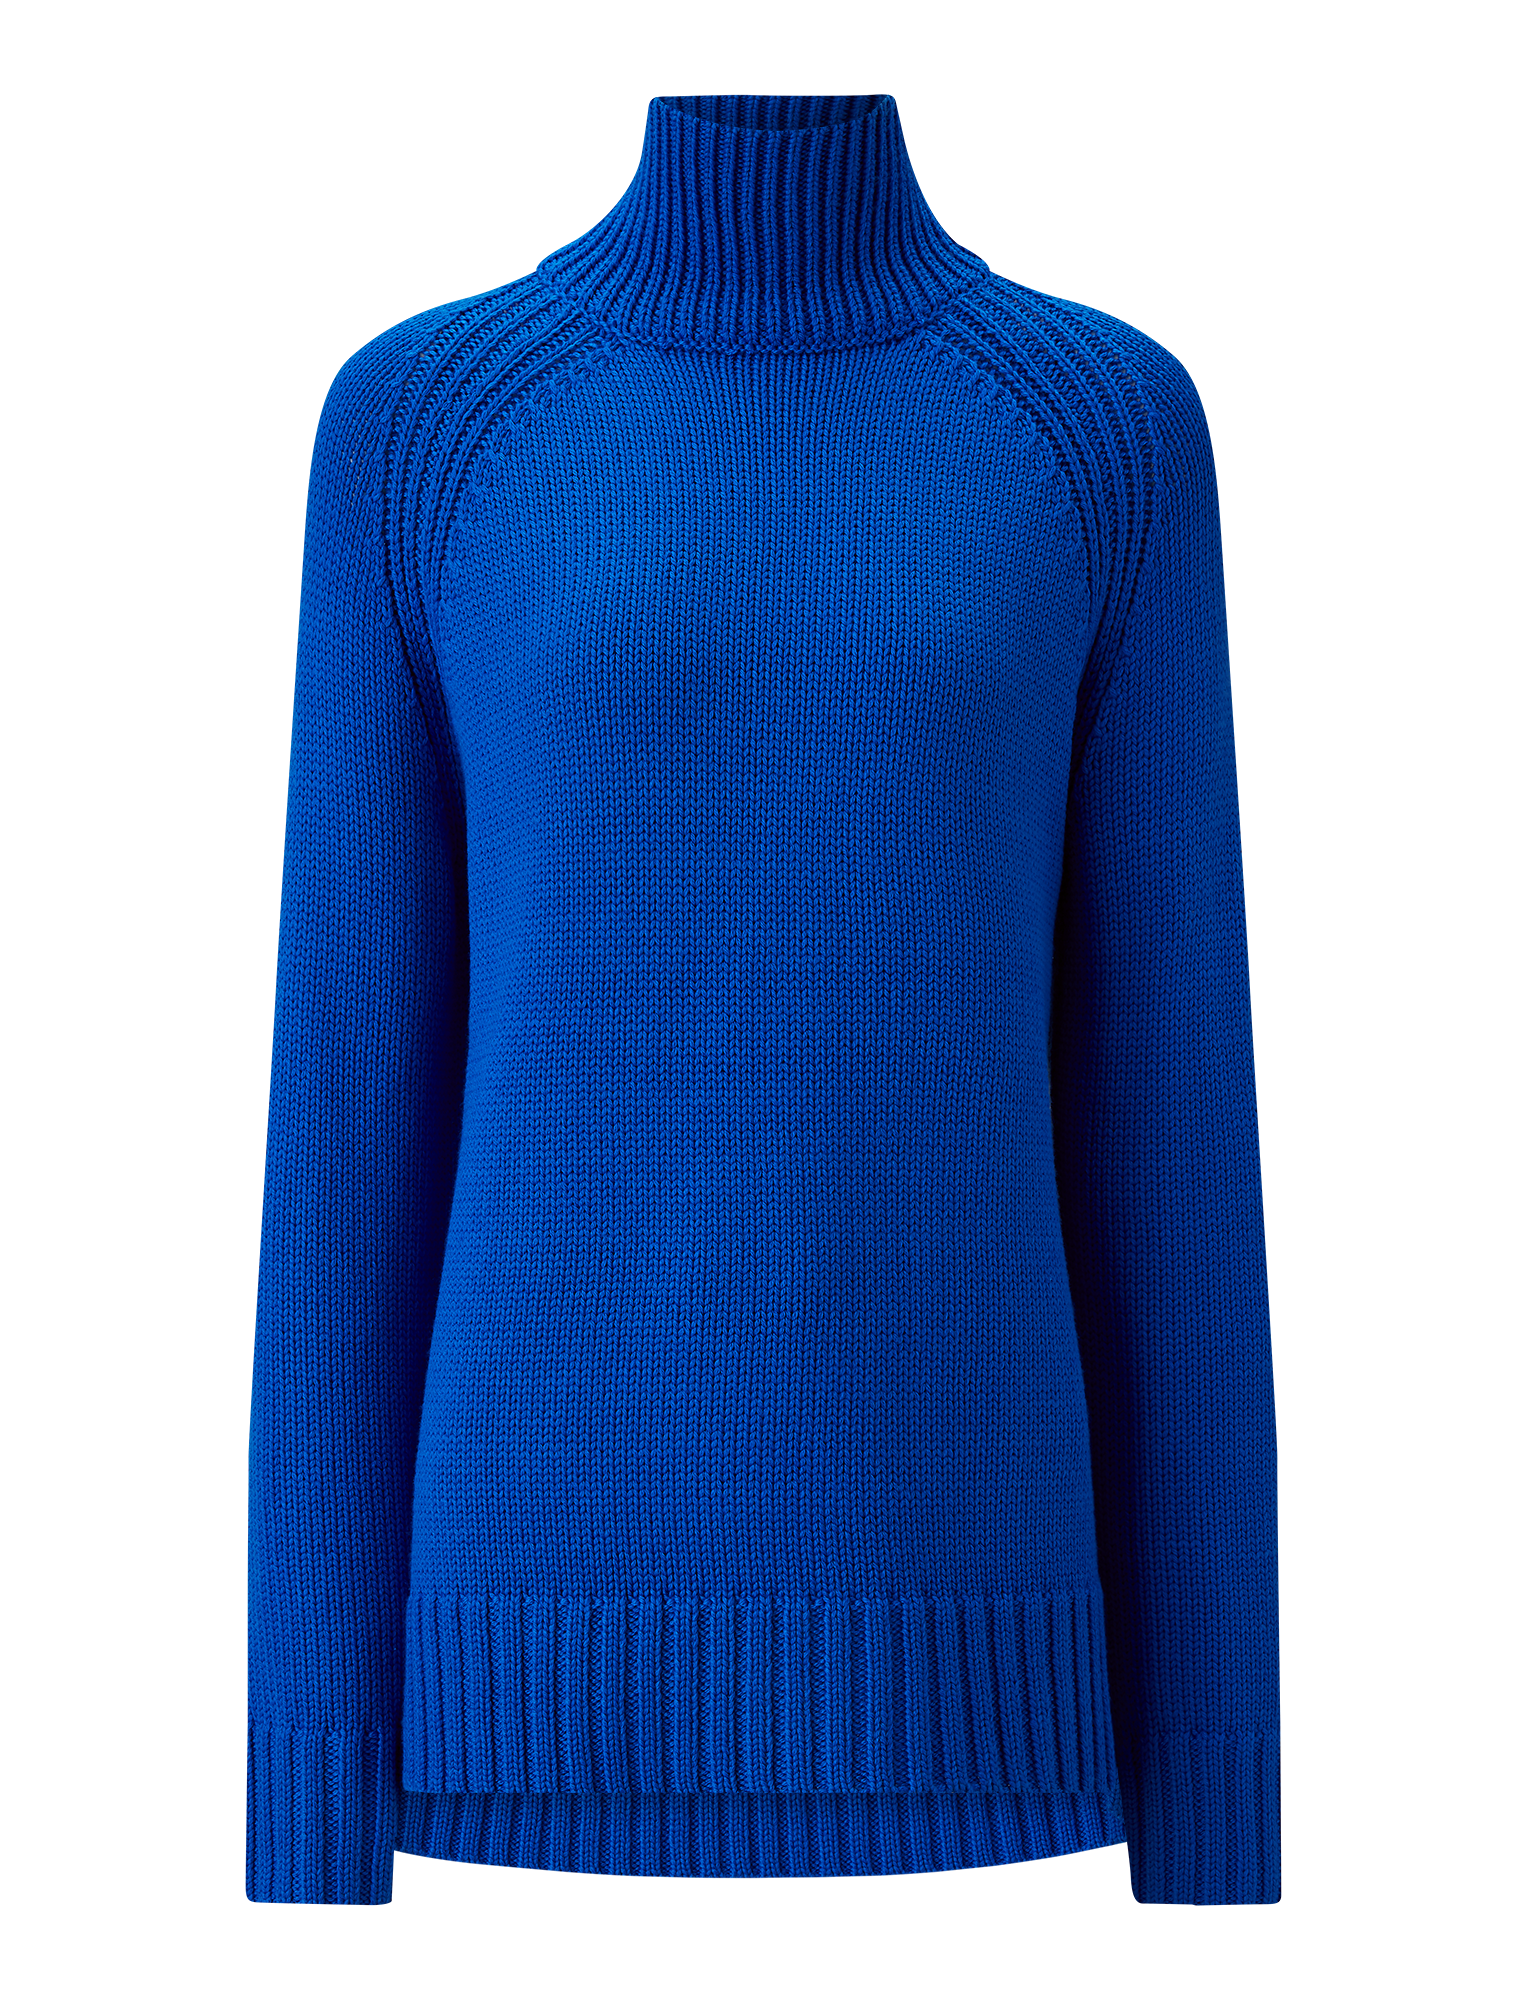 Joseph, New High Neck Sloppy Joe Knit, in PLASTIC BLUE